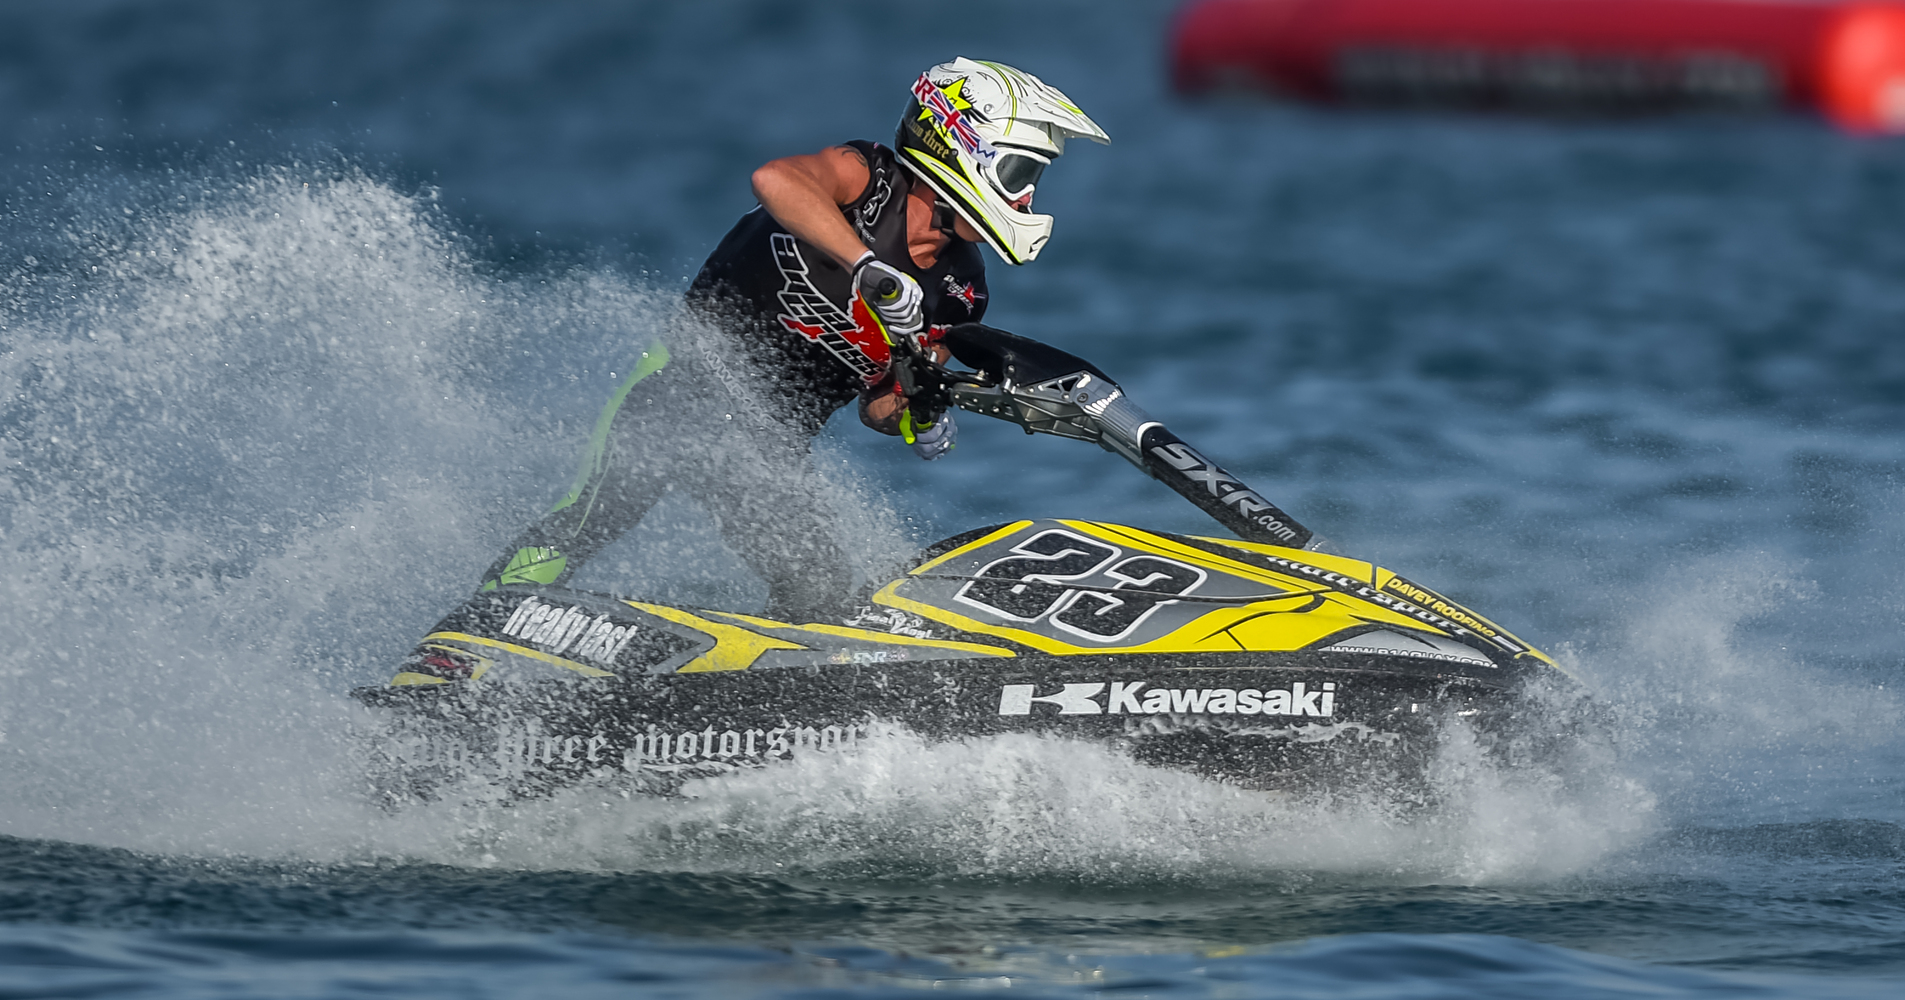 Simon Gill took home the Ski Lites championship to match his UK title